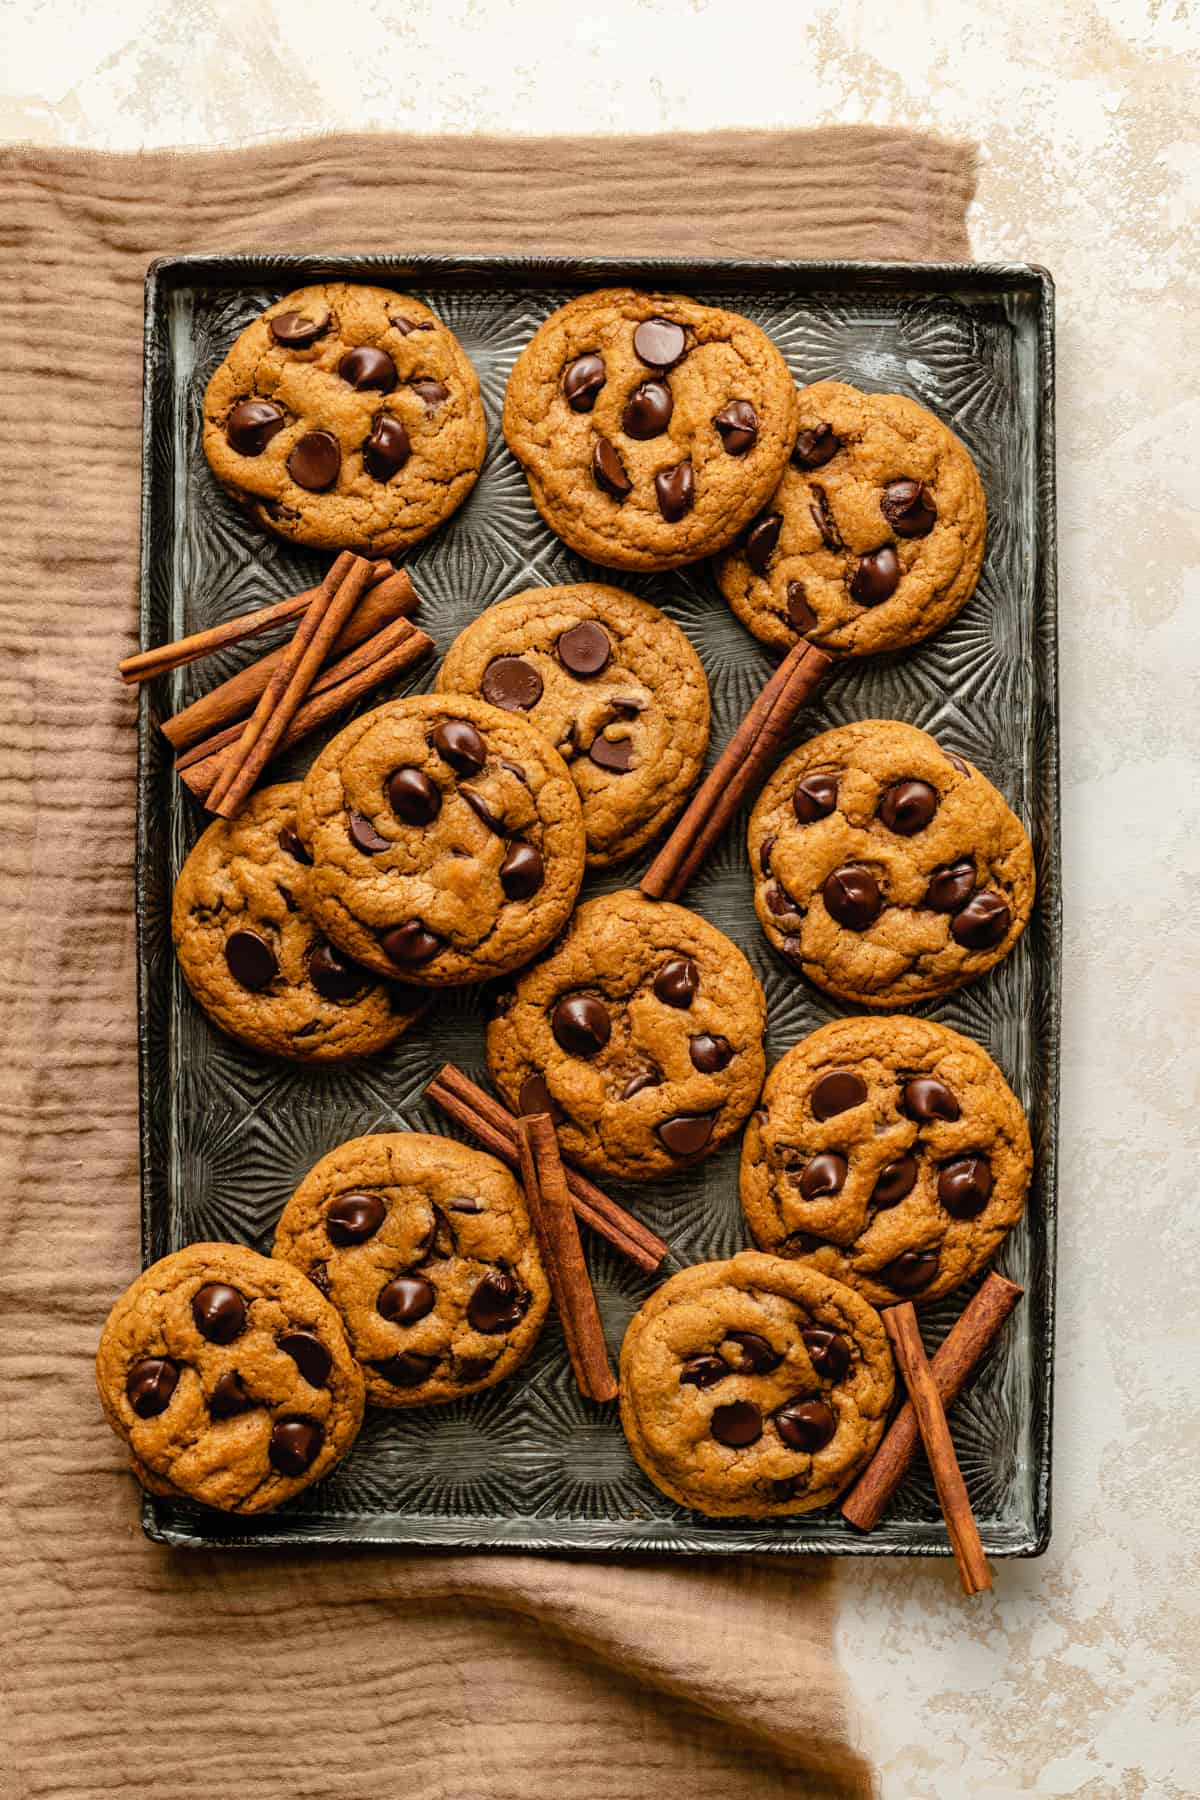 A tray of chewy cookies with cinnamon sticks scattered amongst them.